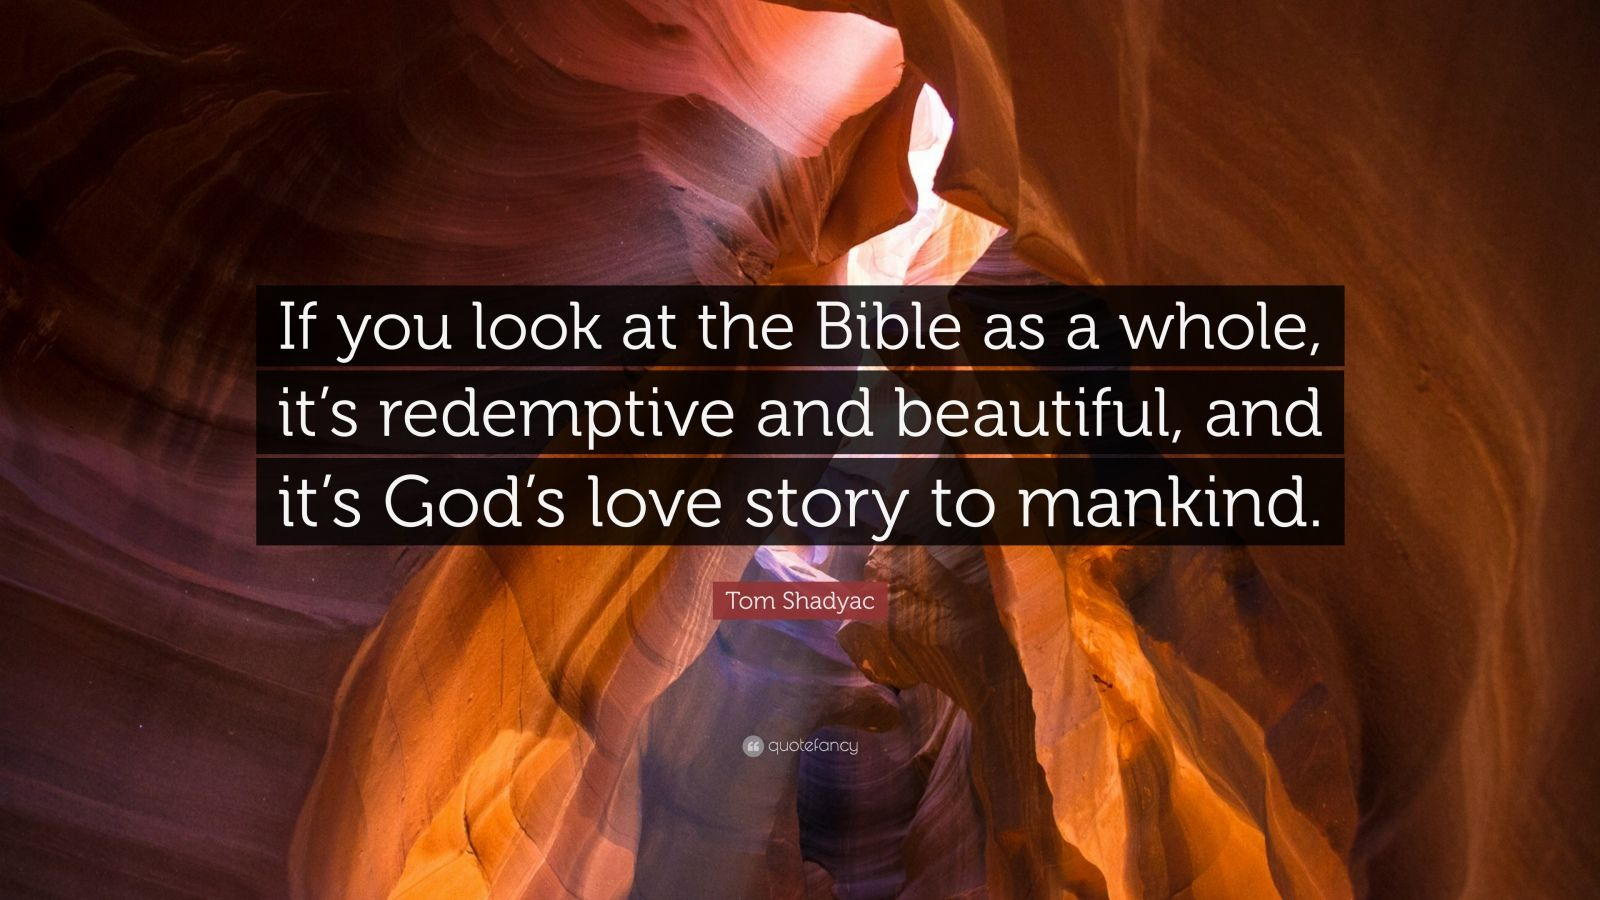 """Tom Shadyac Quote: """"If you look at the Bible as a whole, it's redemptive and beautiful, and it's God's love story to mankind."""""""